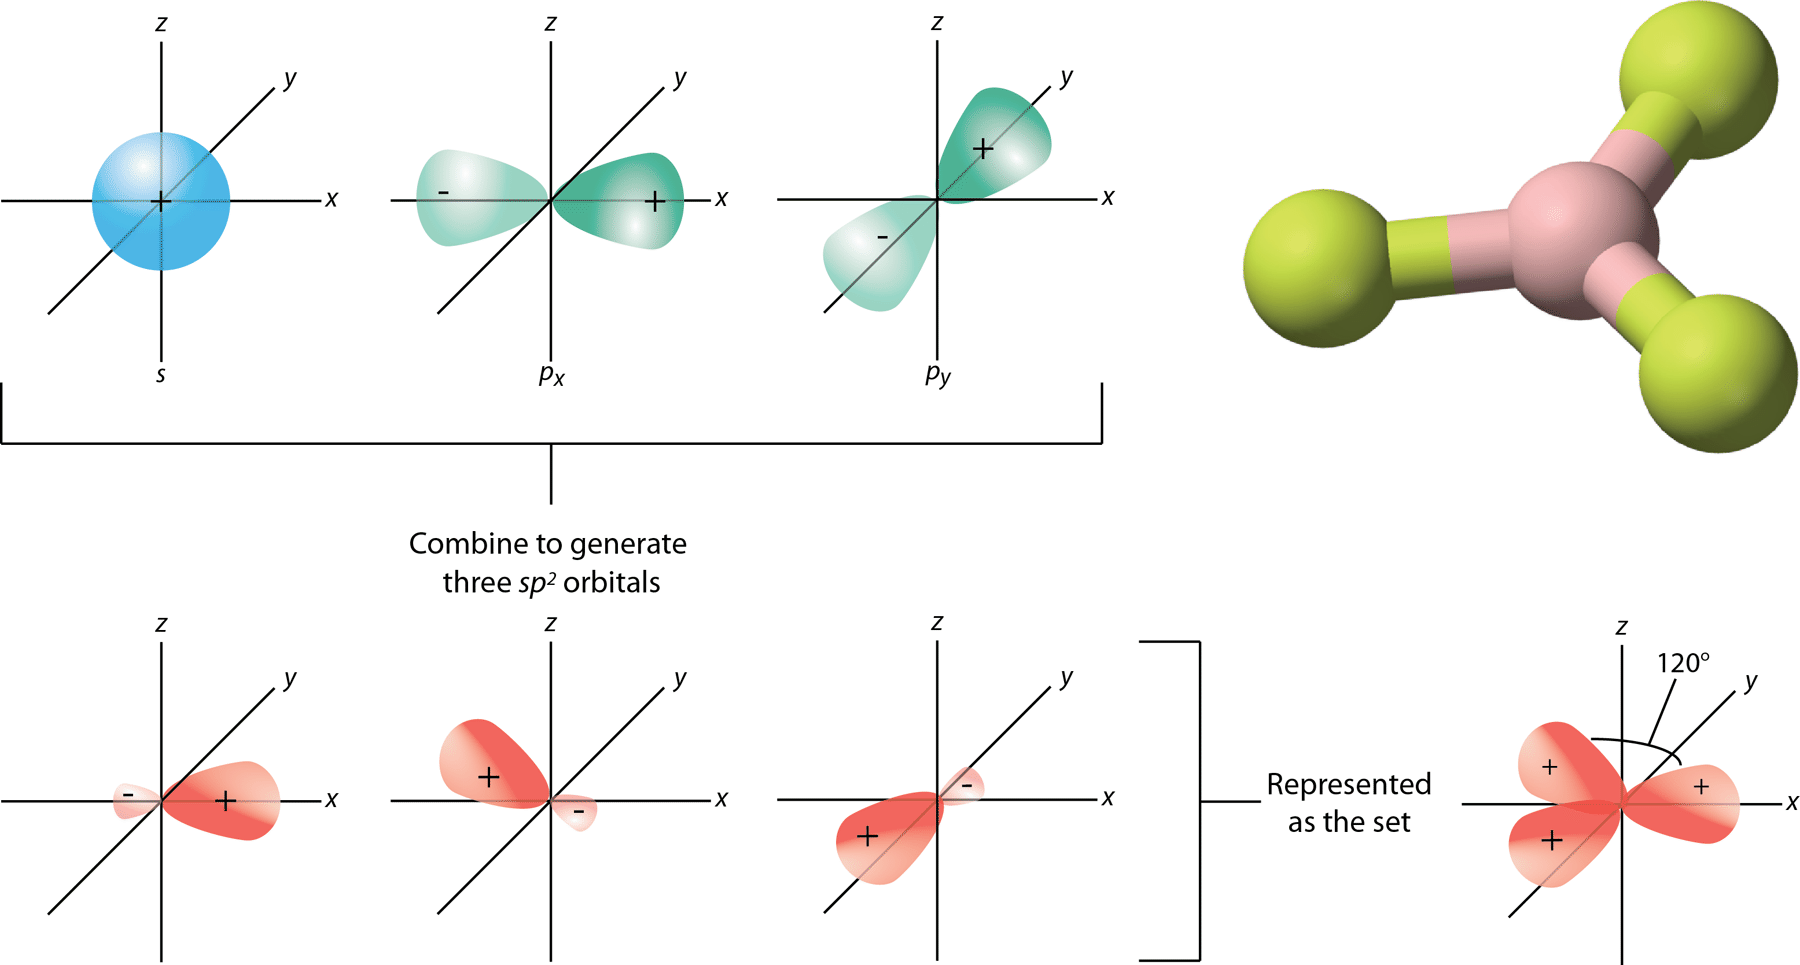 Hybrid orbitals sp and sp2 ck 12 foundation image of how s and p orbitals combine to form sp2 orbitals pooptronica